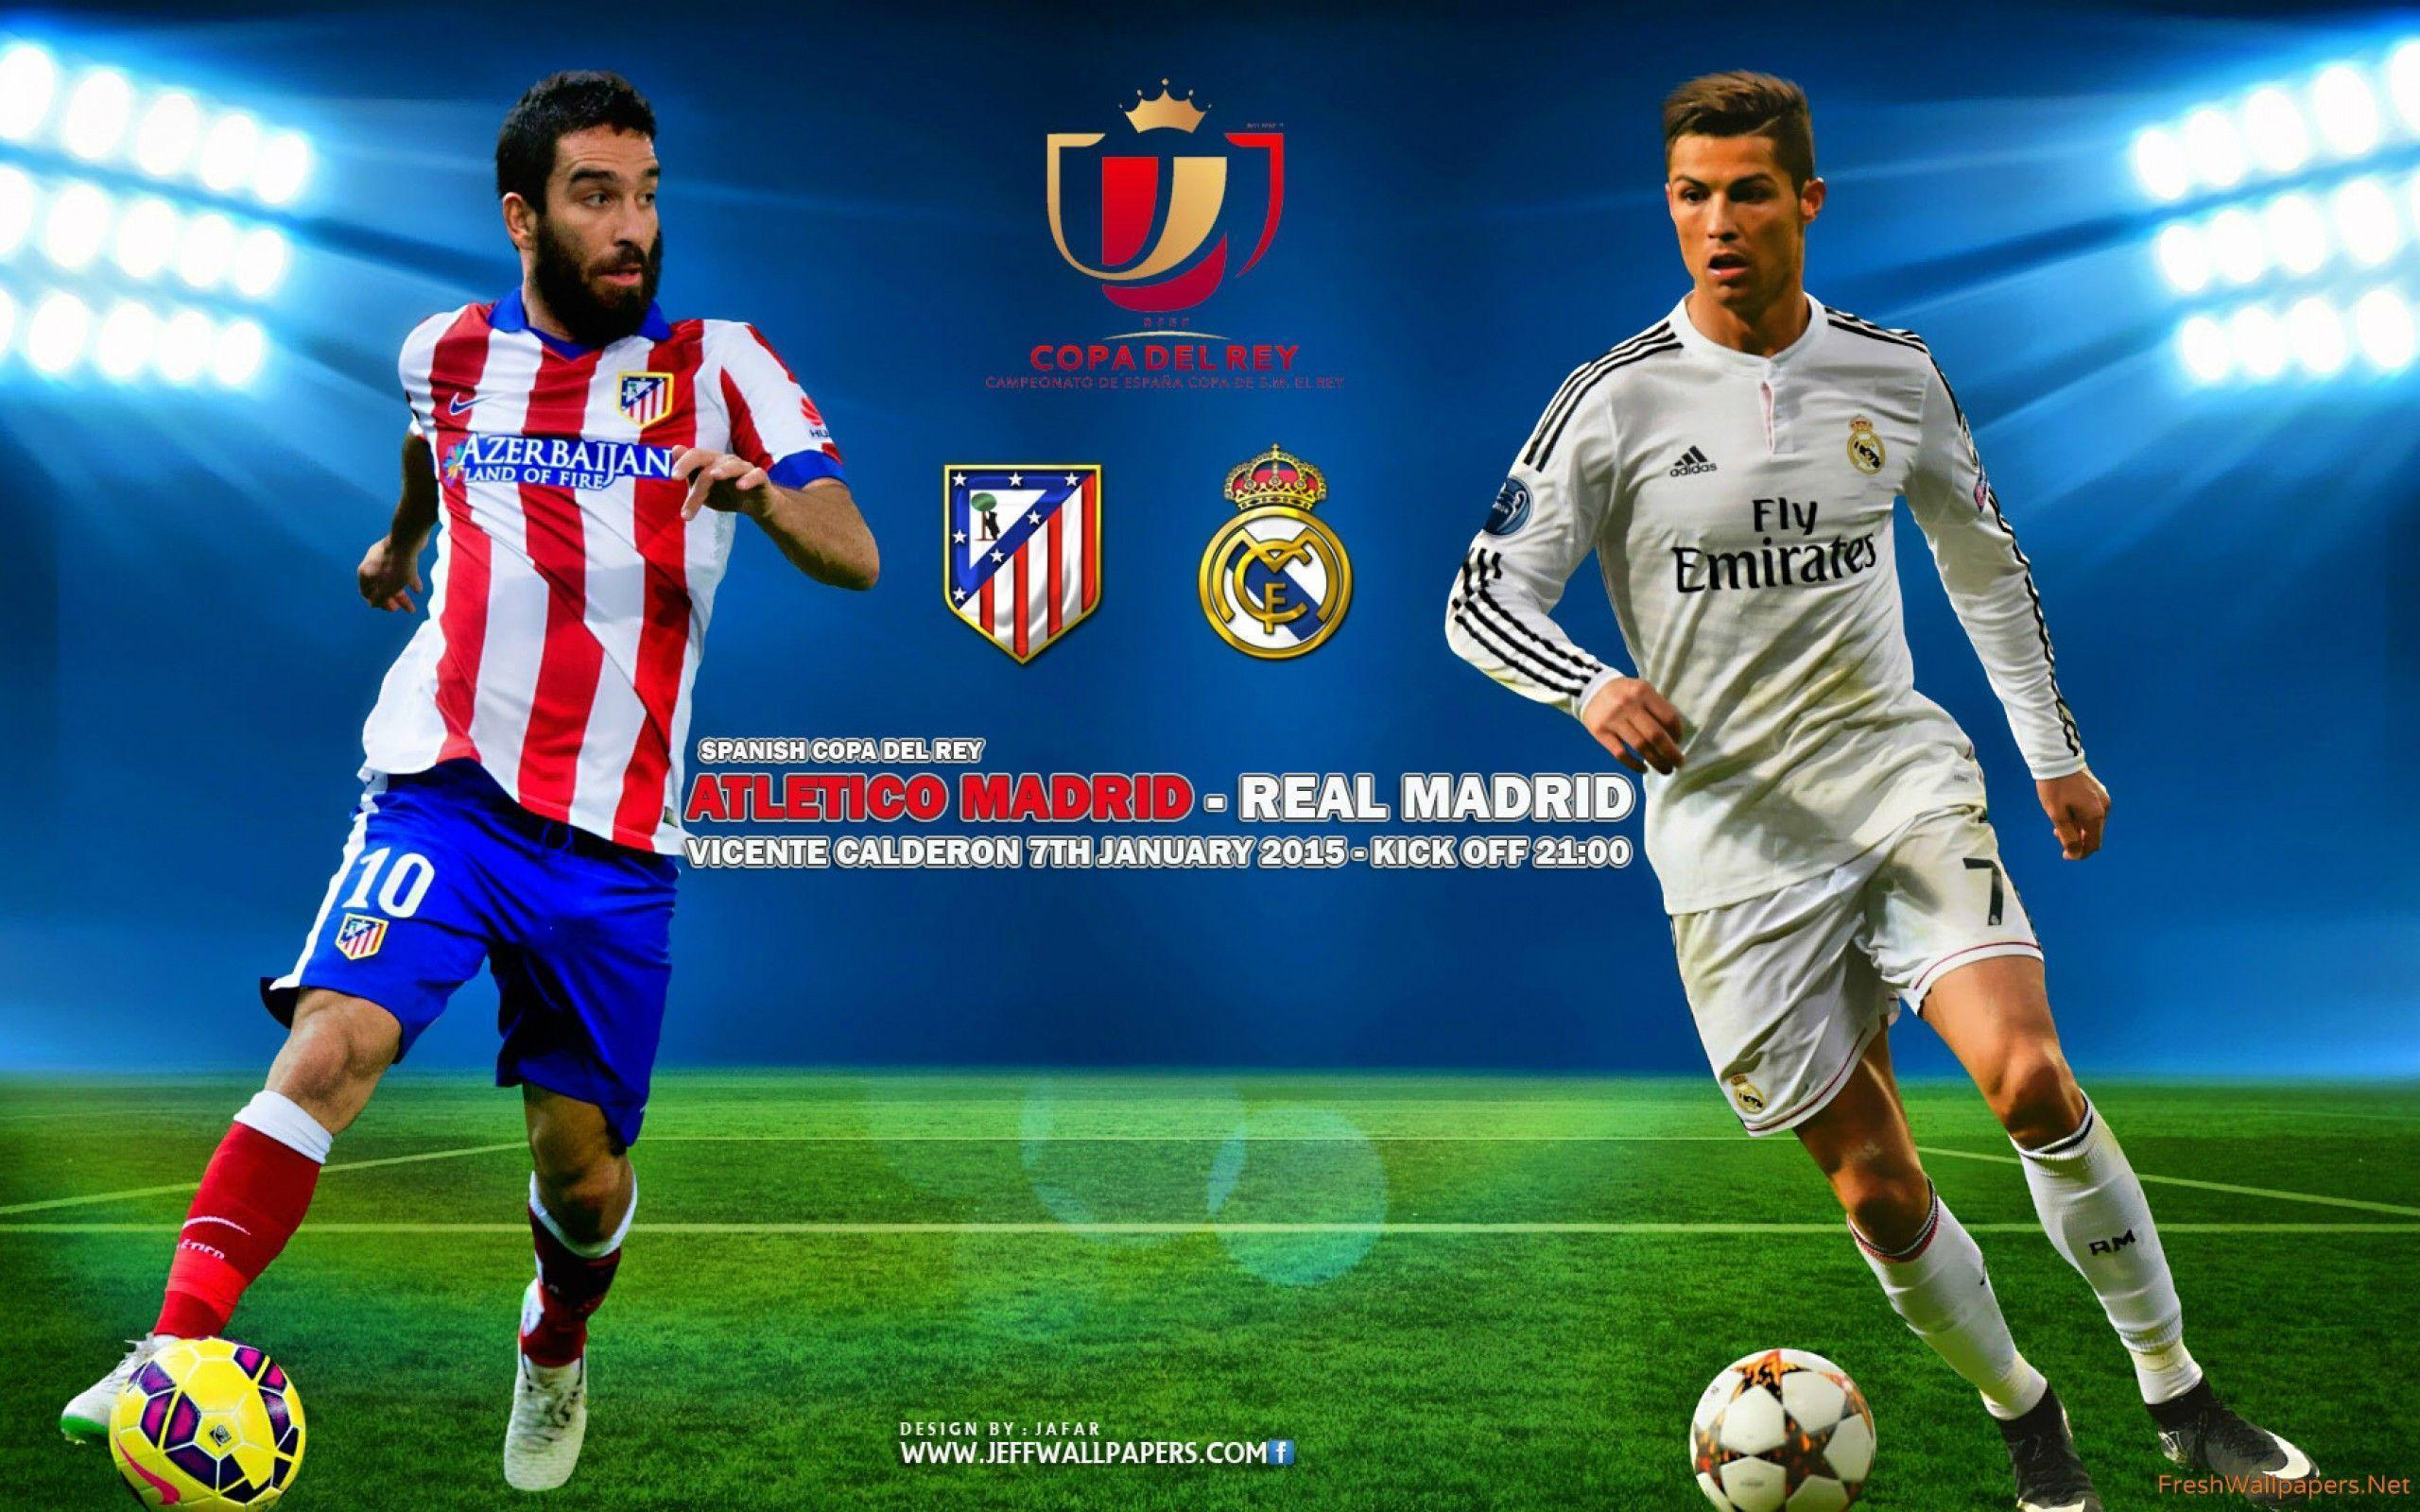 Atletico Madrid Vs Real Madrid: Real Madrid 2015 Wallpapers 3D